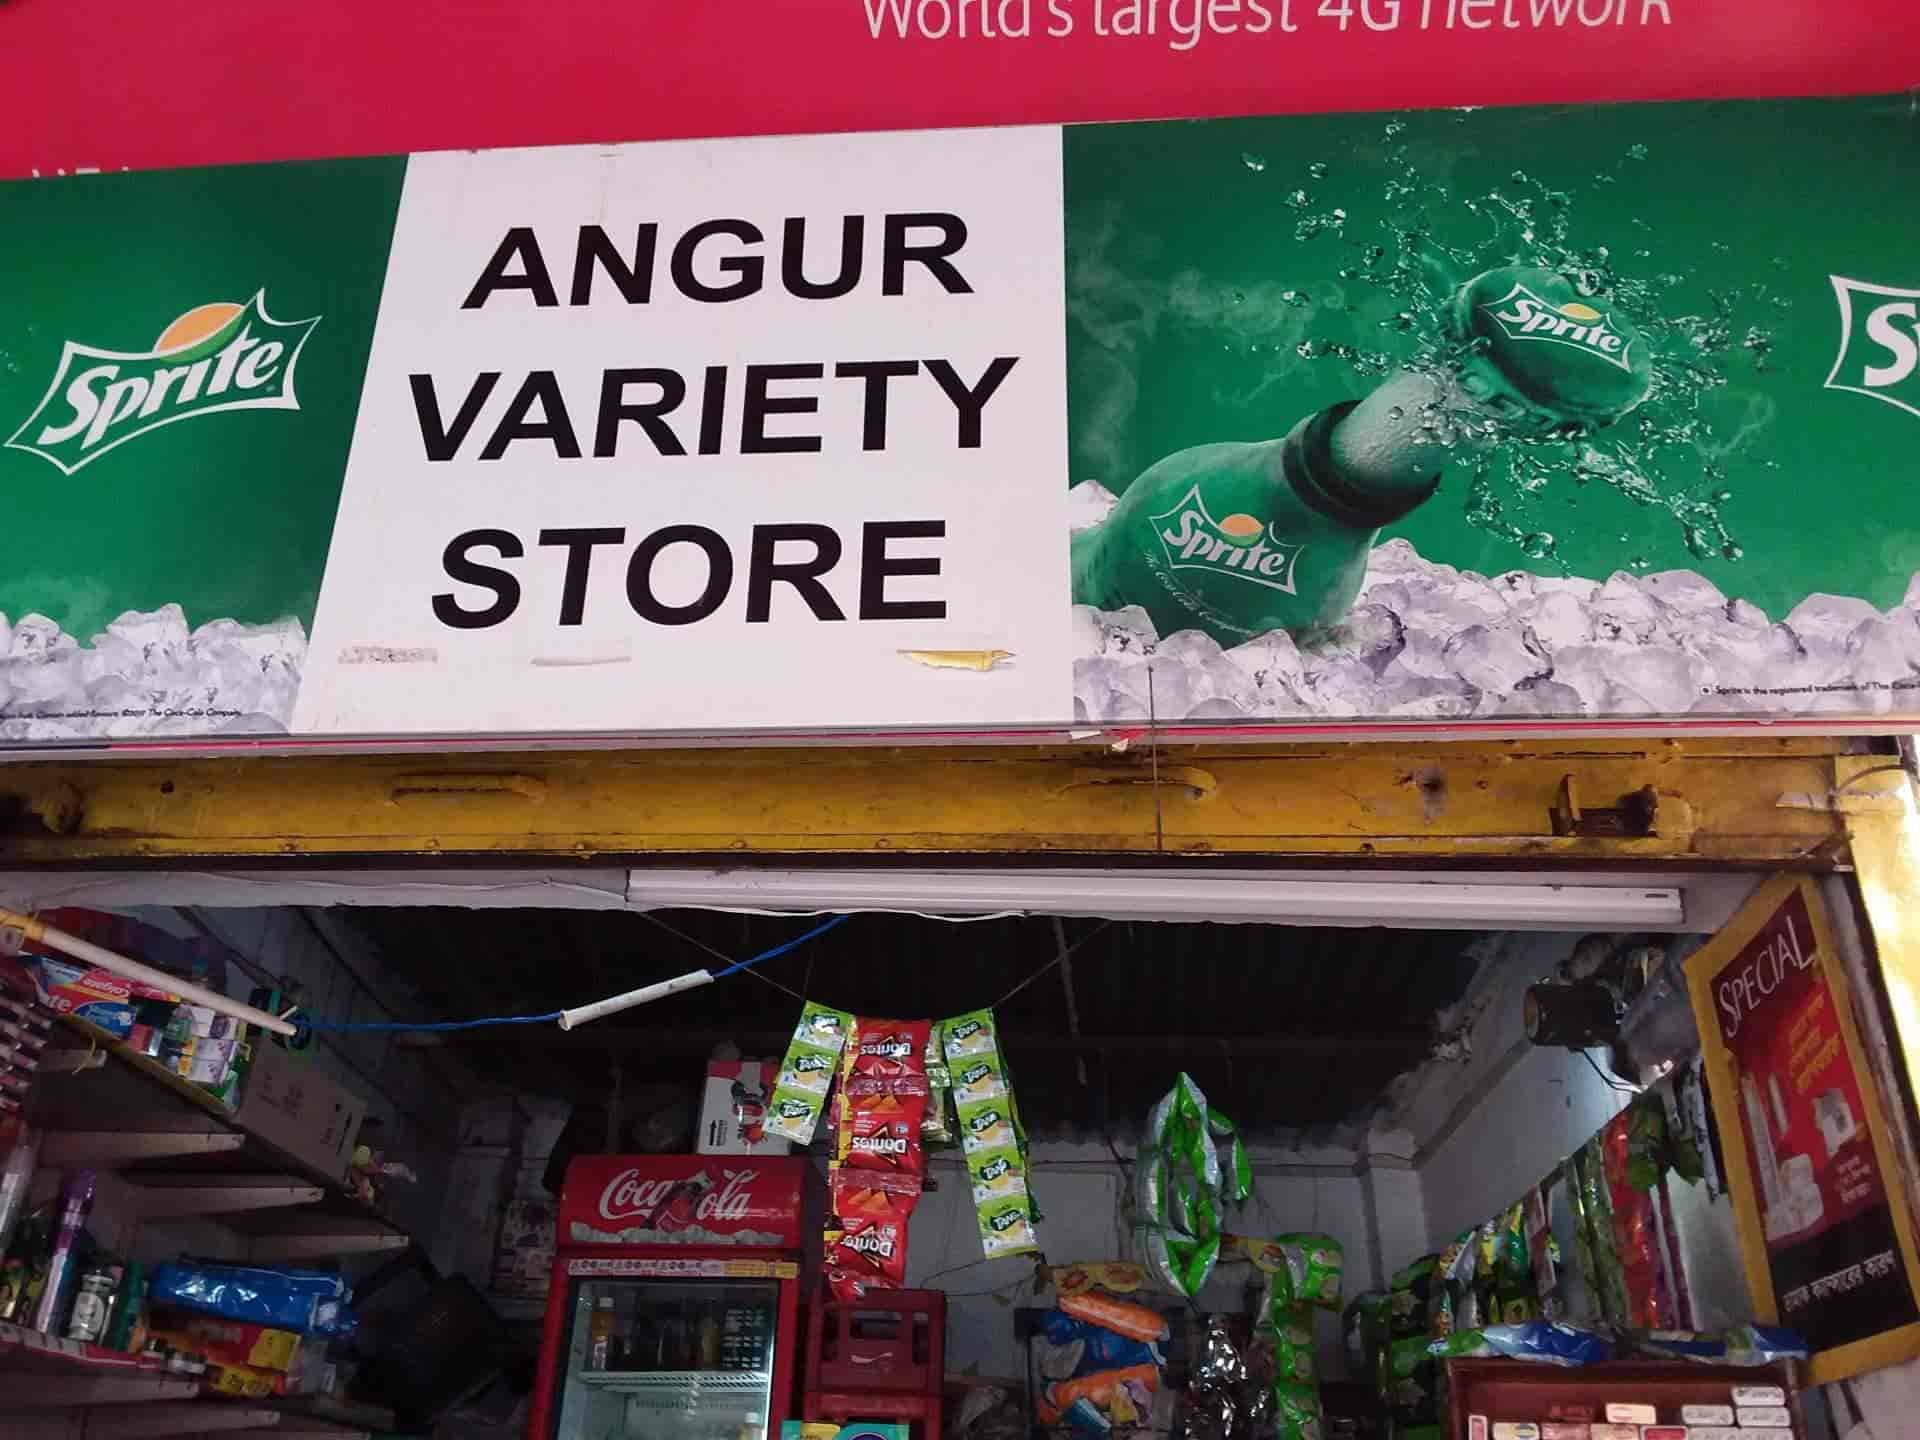 Angur Variety Store Photos, Durgapur Steel Town East